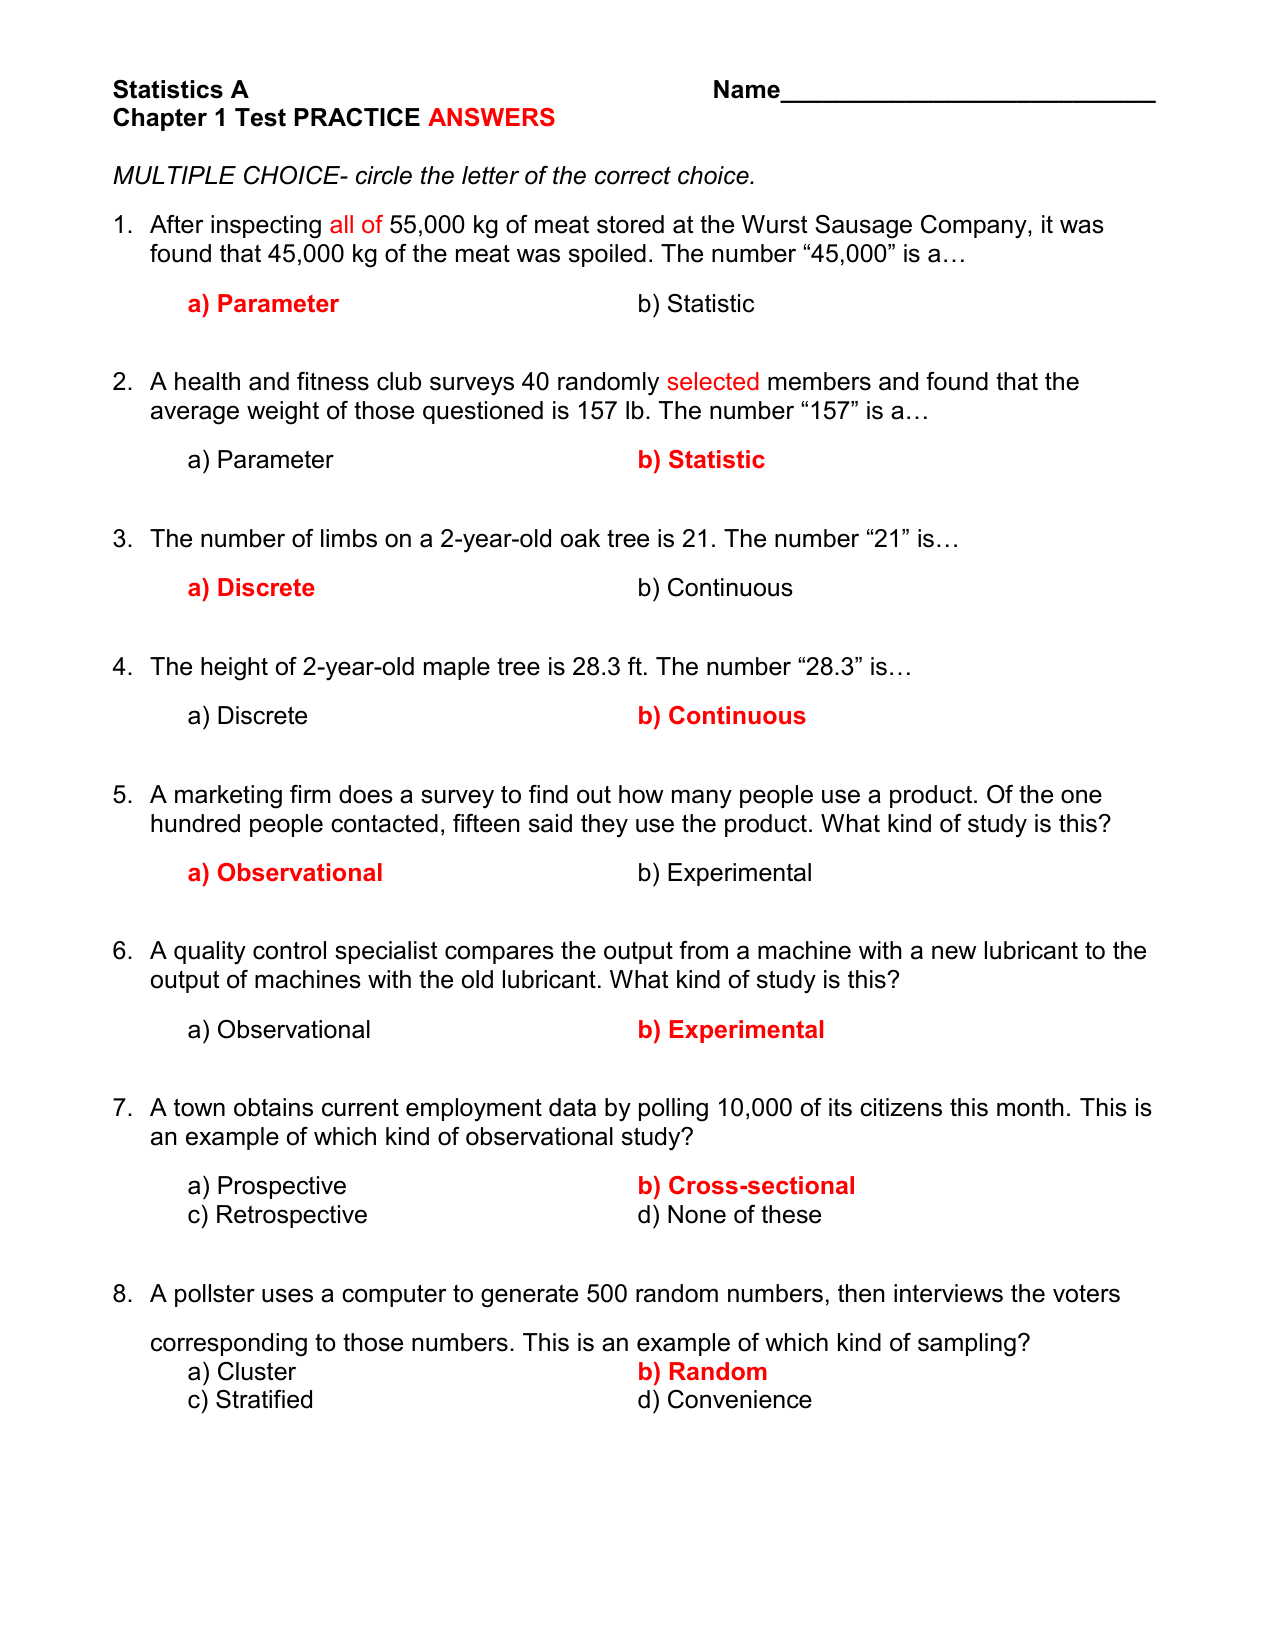 Statistics A Name Chapter 1 Test